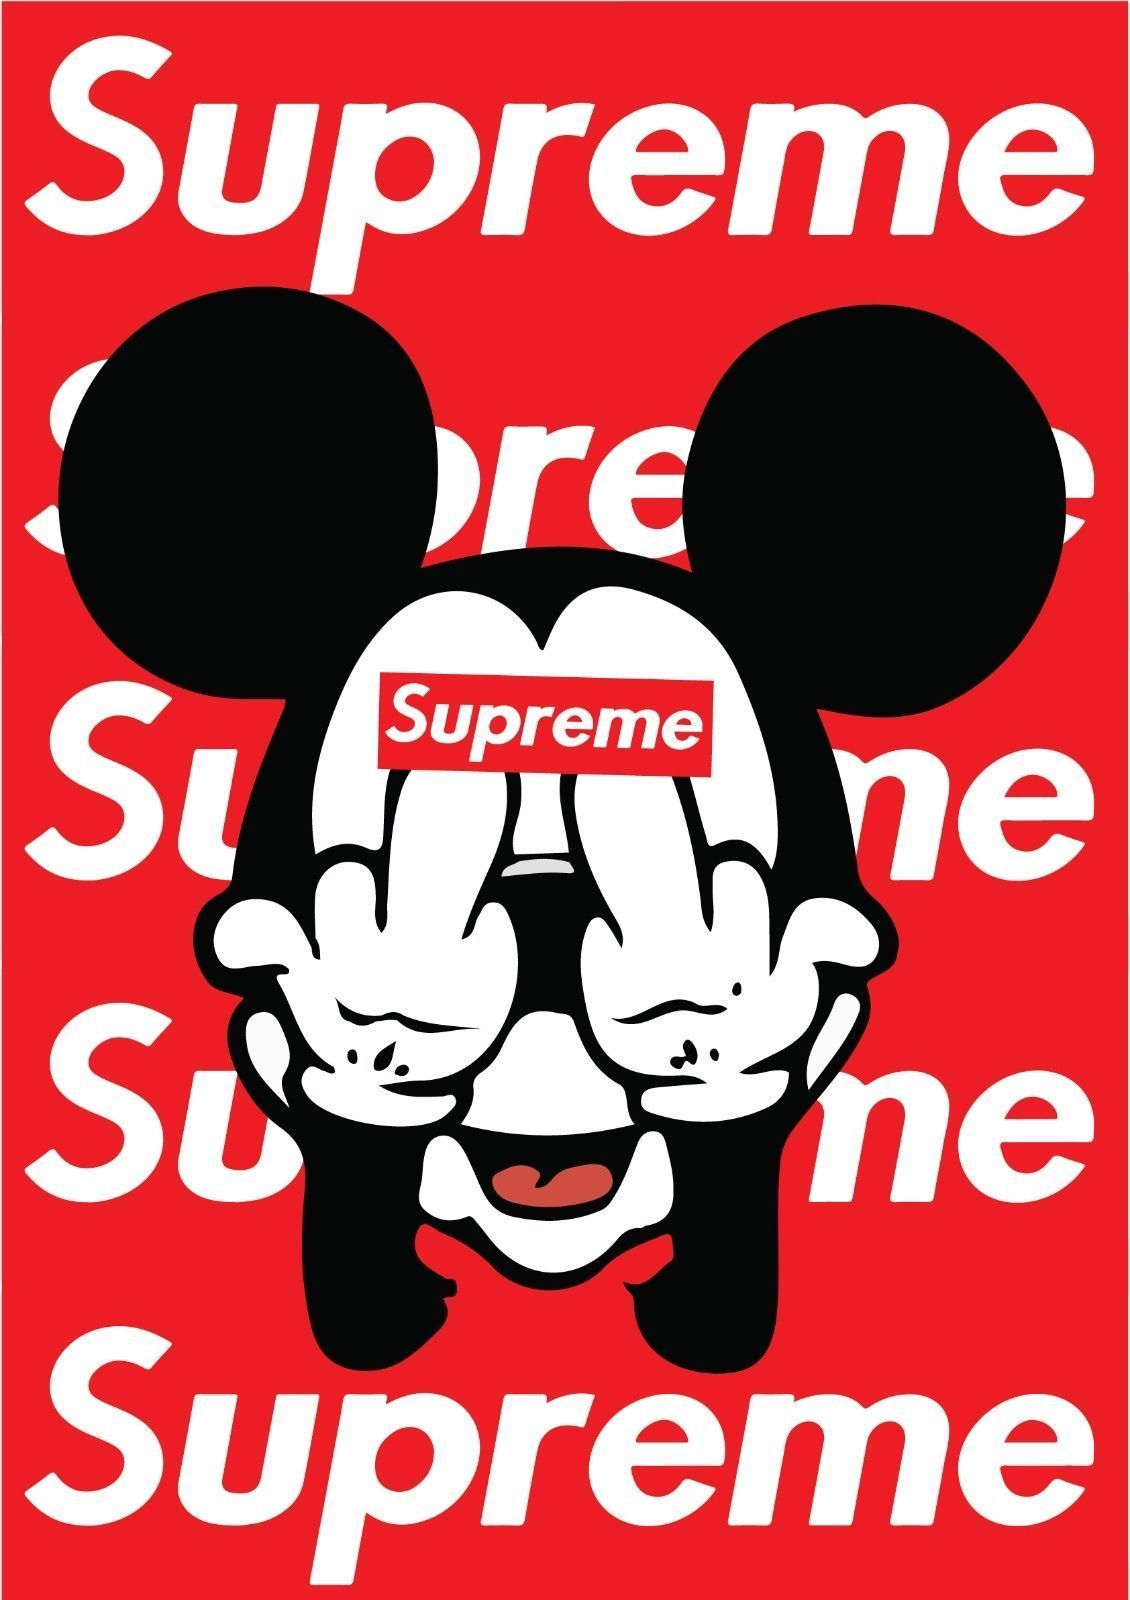 Supreme Hypebeast Poster Minimalist Posters In 2020 Minimalist Poster Supreme Iphone Wallpaper Mickey Mouse